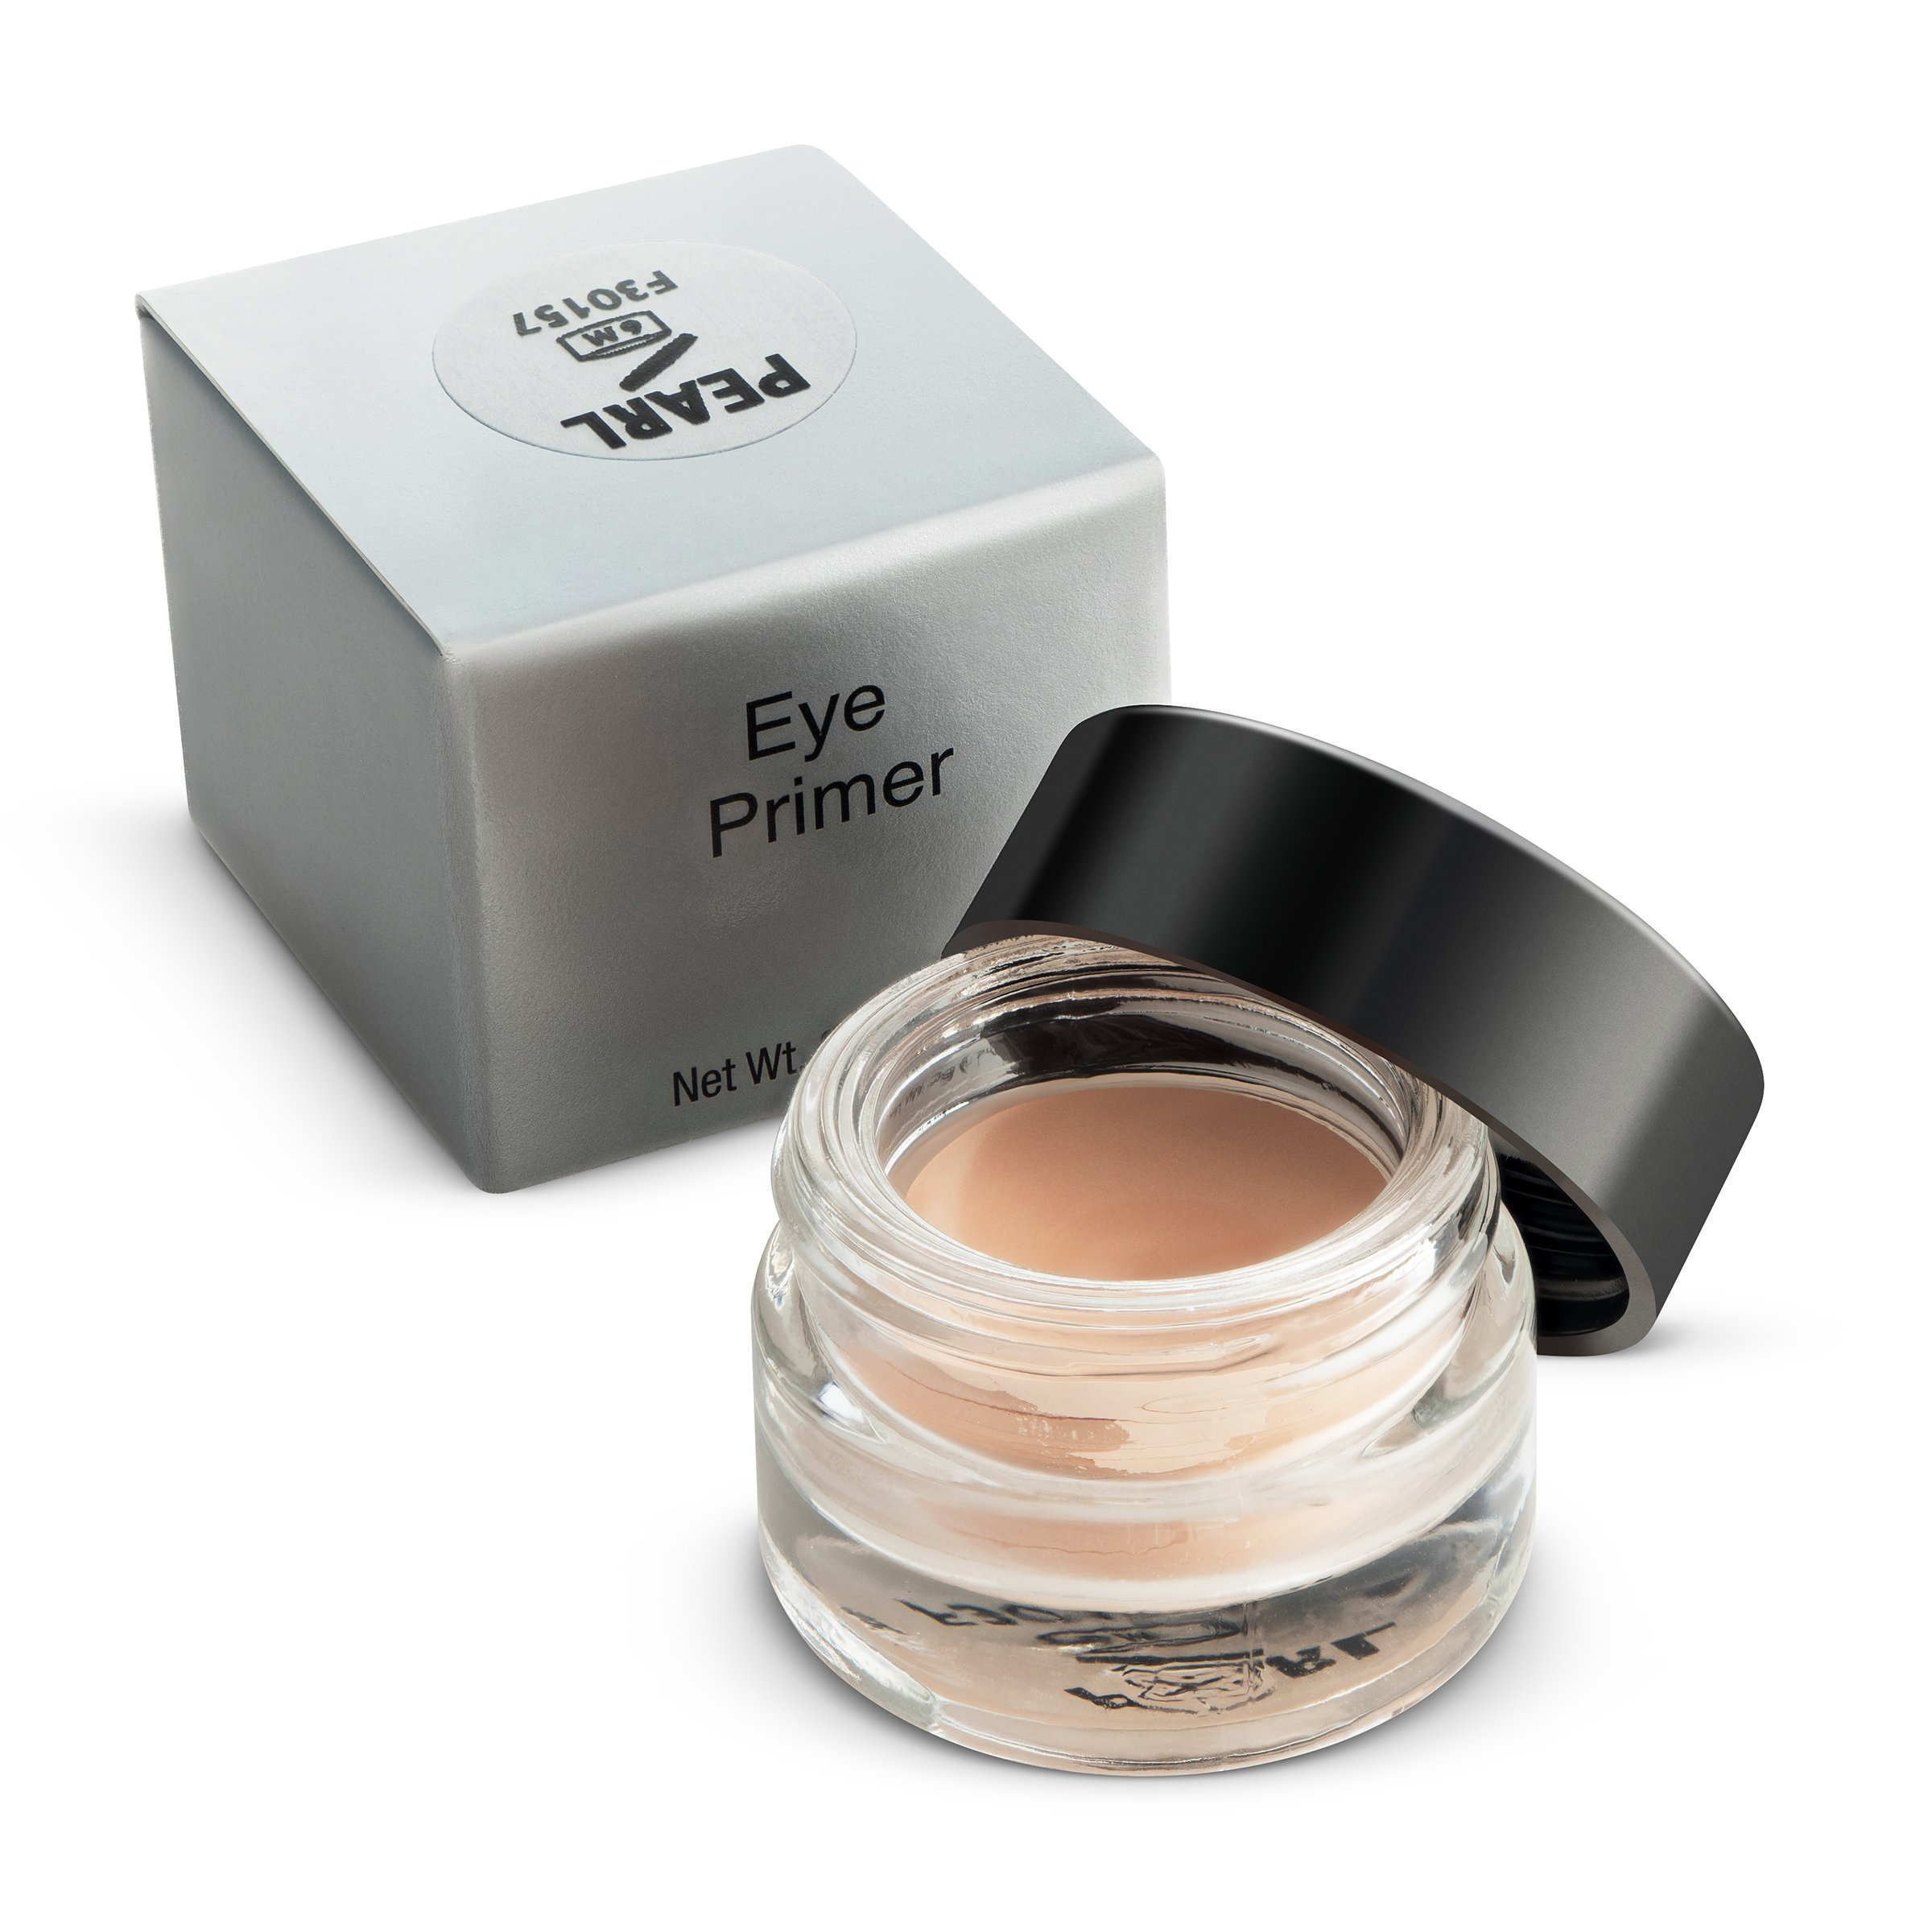 Jolie Luminous Eye Primer Base, Pearl - Waterproof Net Wt. 3g